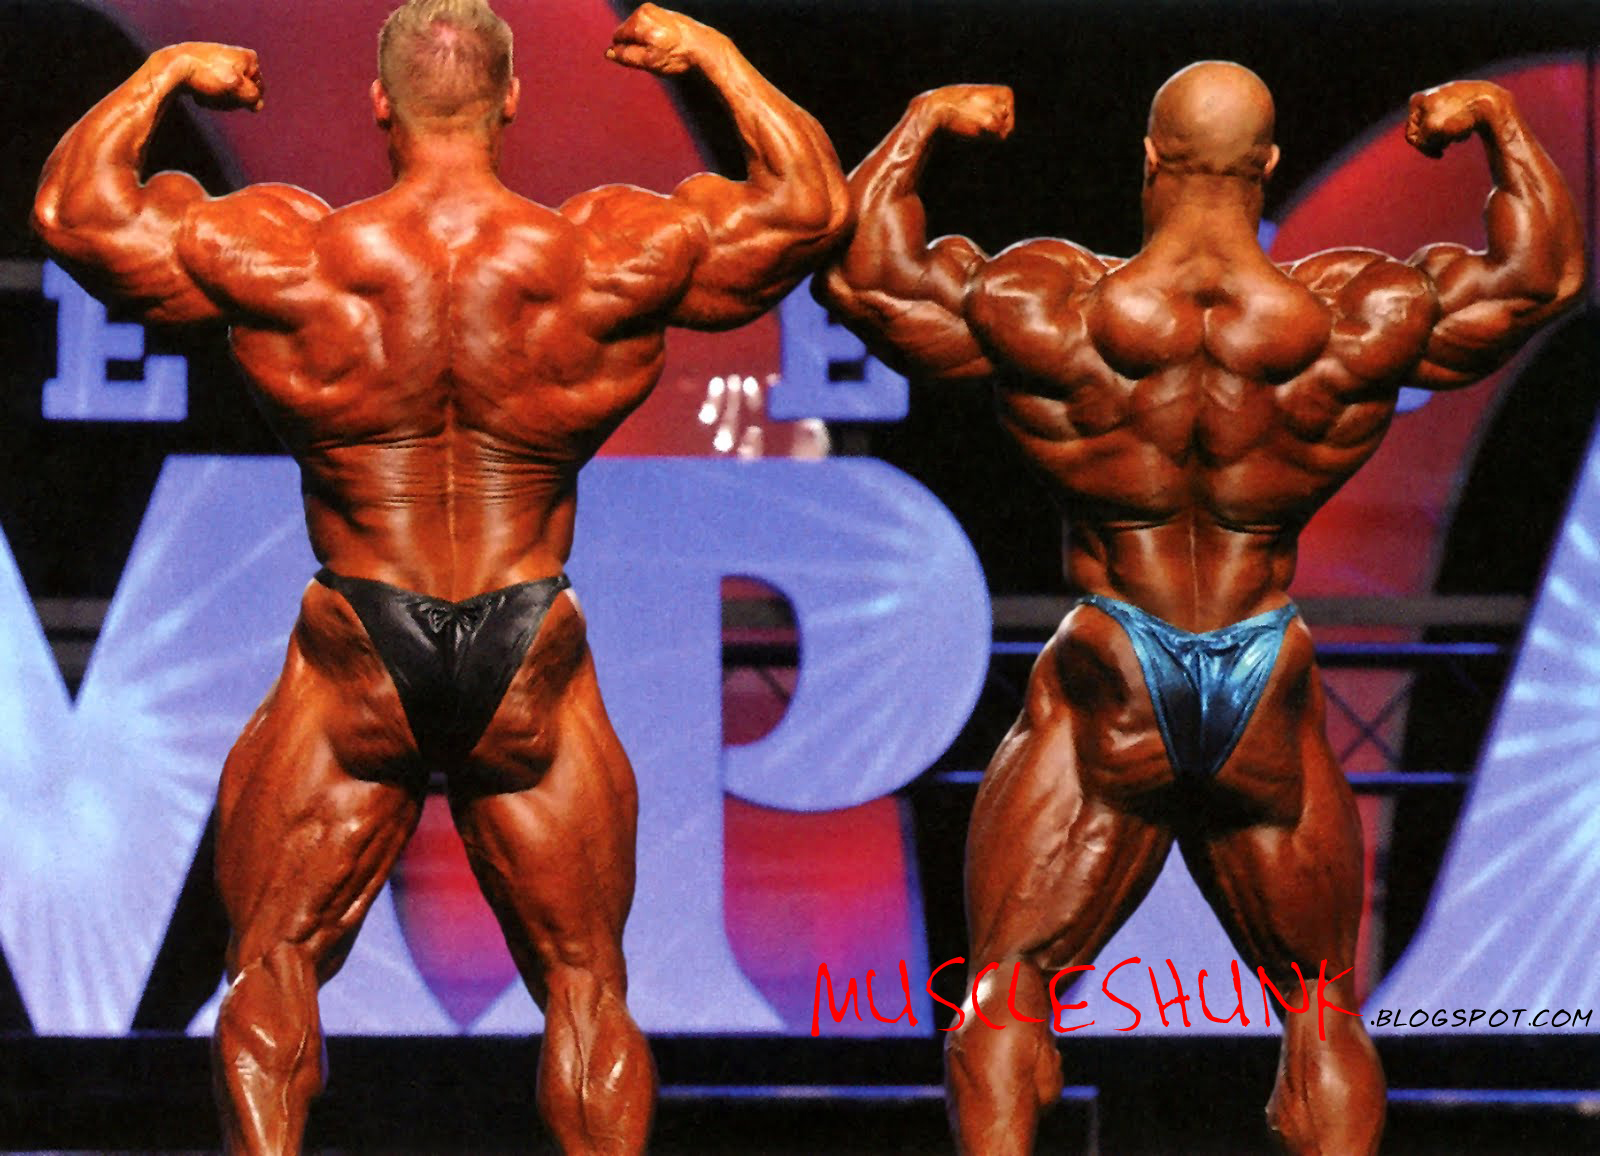 Jay Cutler and Phil heath Photos